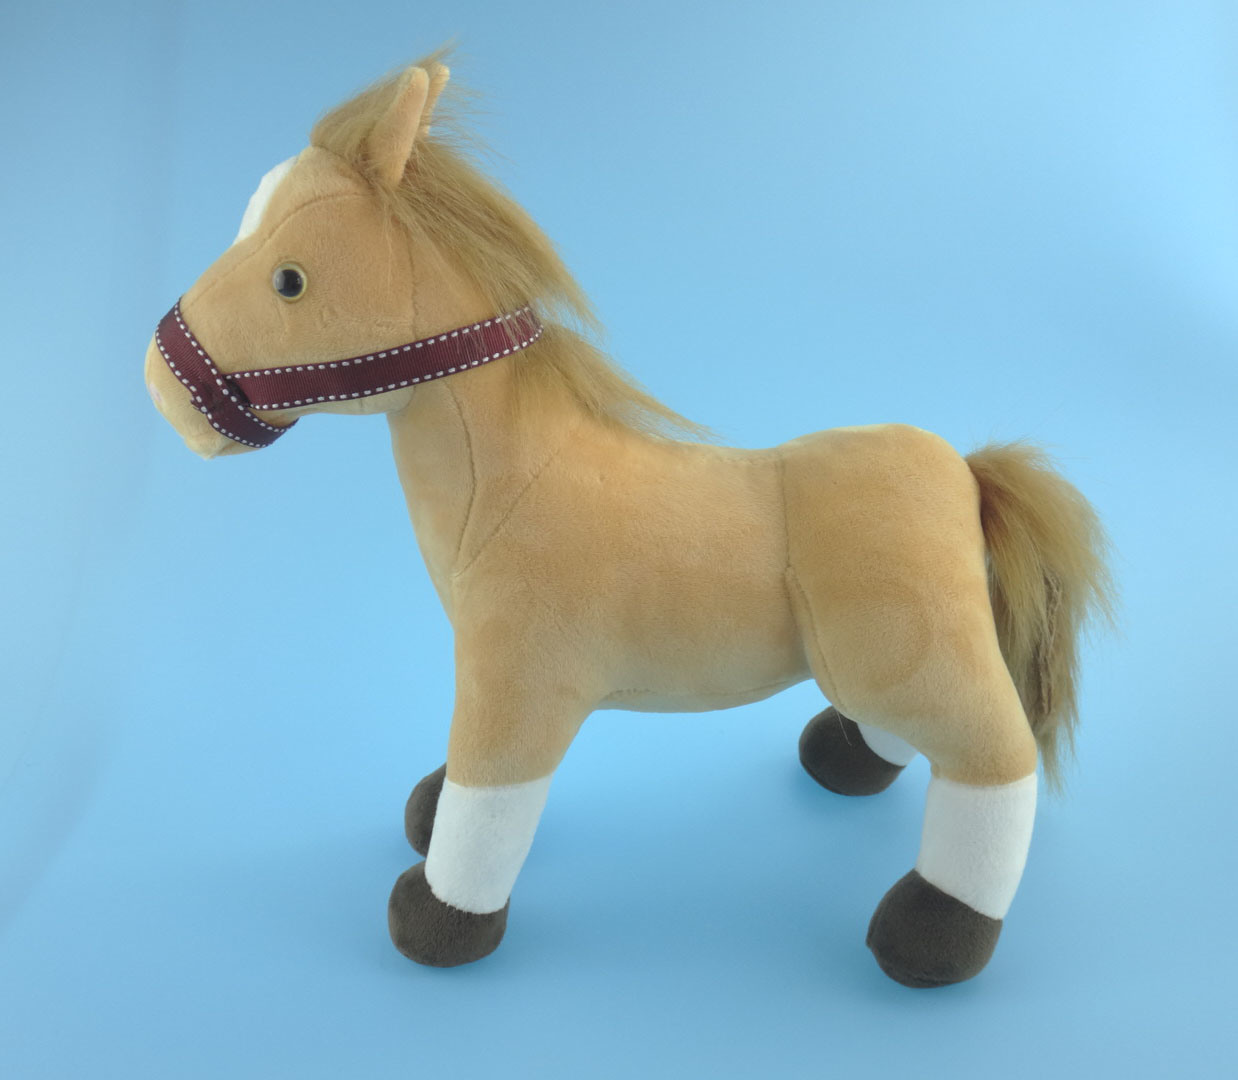 Soft Stuffed Plush Toy Horse